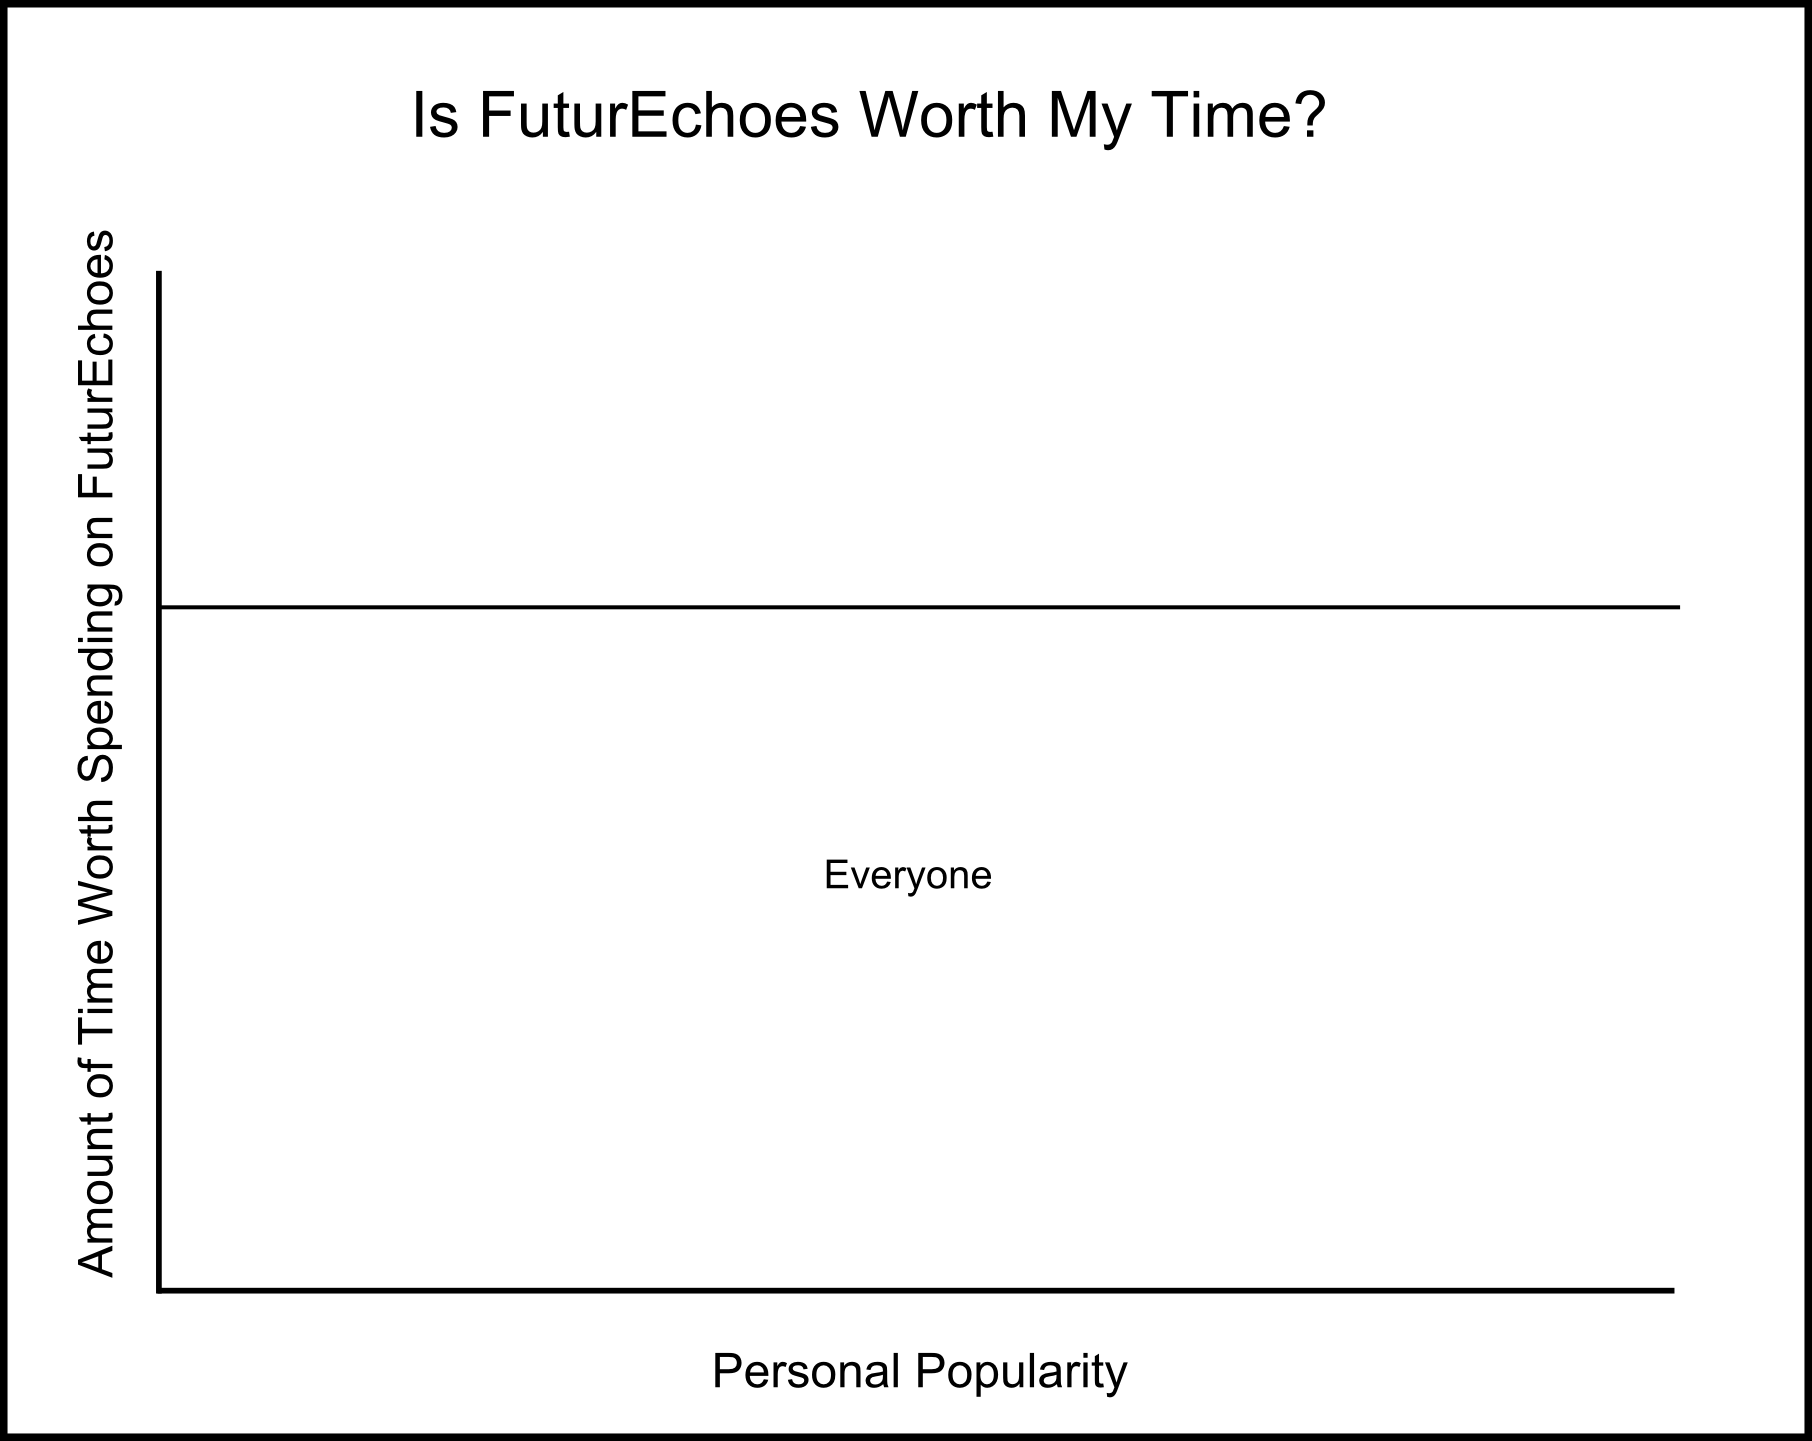 Is FuturEchoes Worth My Time?